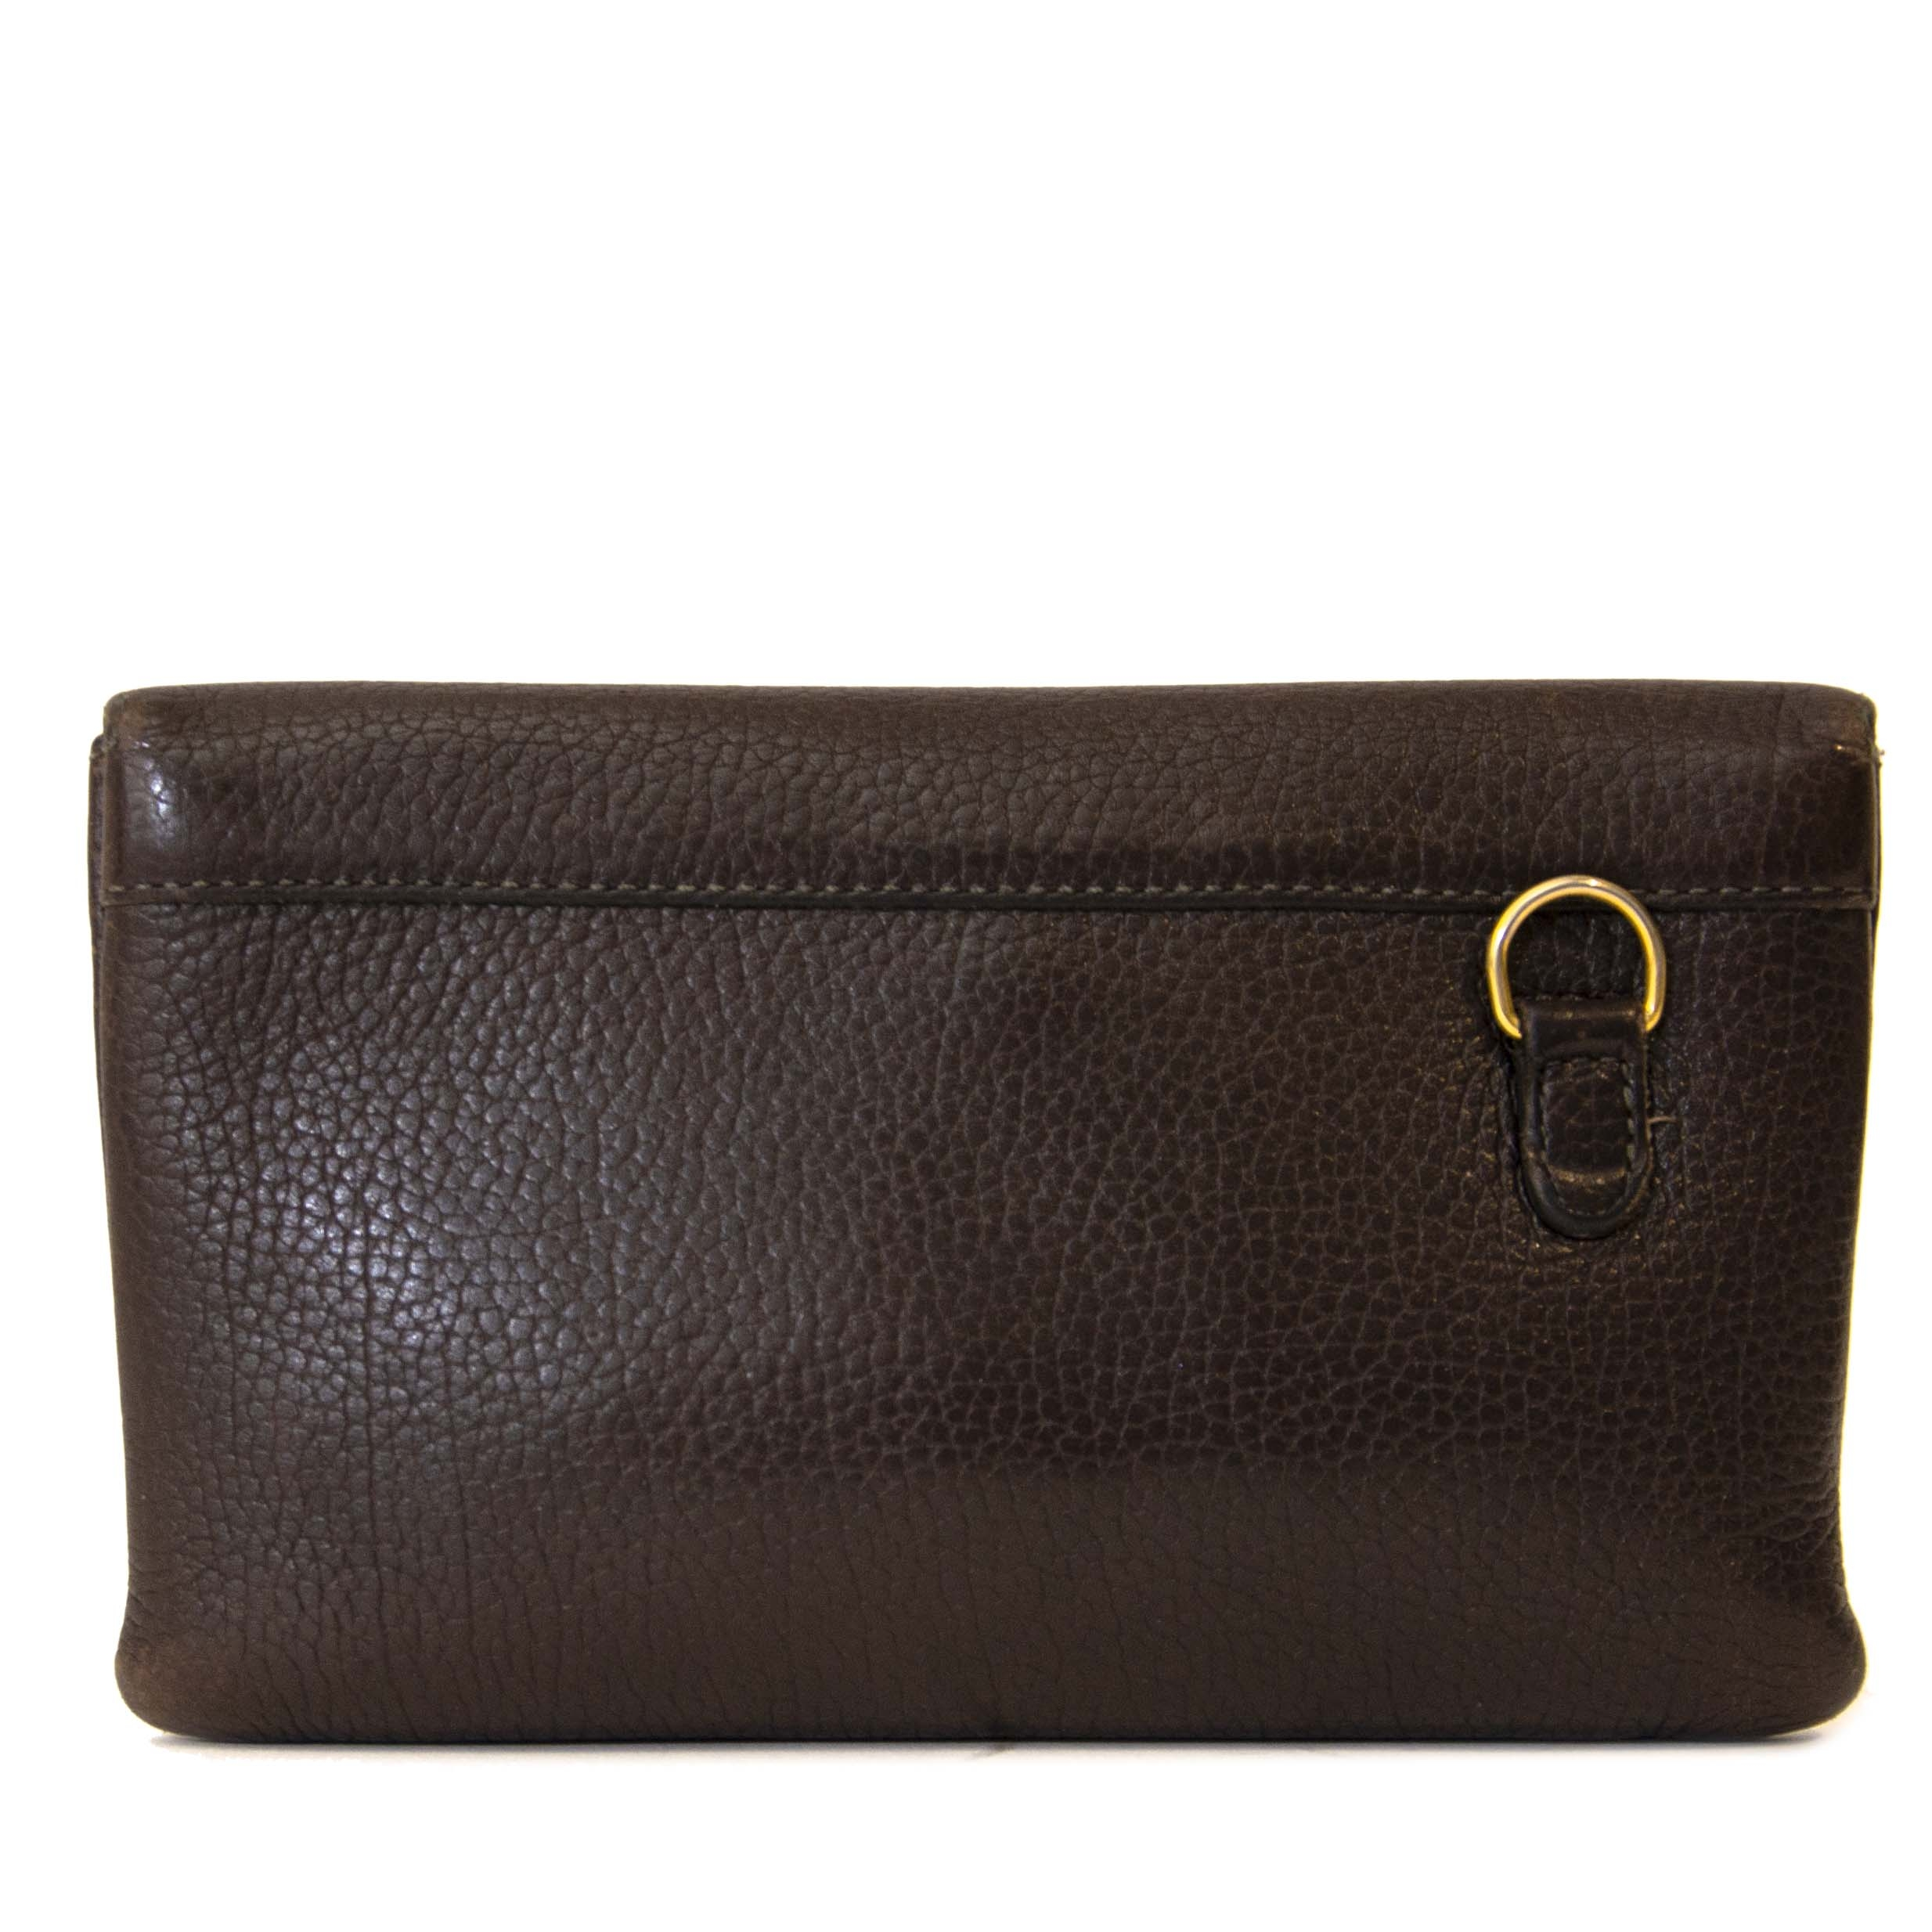 Delvaux Brown Leather Wallet. Buy authentic Delvaux wallet online at LabelLOV, Antwerp. Brown wallet timeless and elegant.